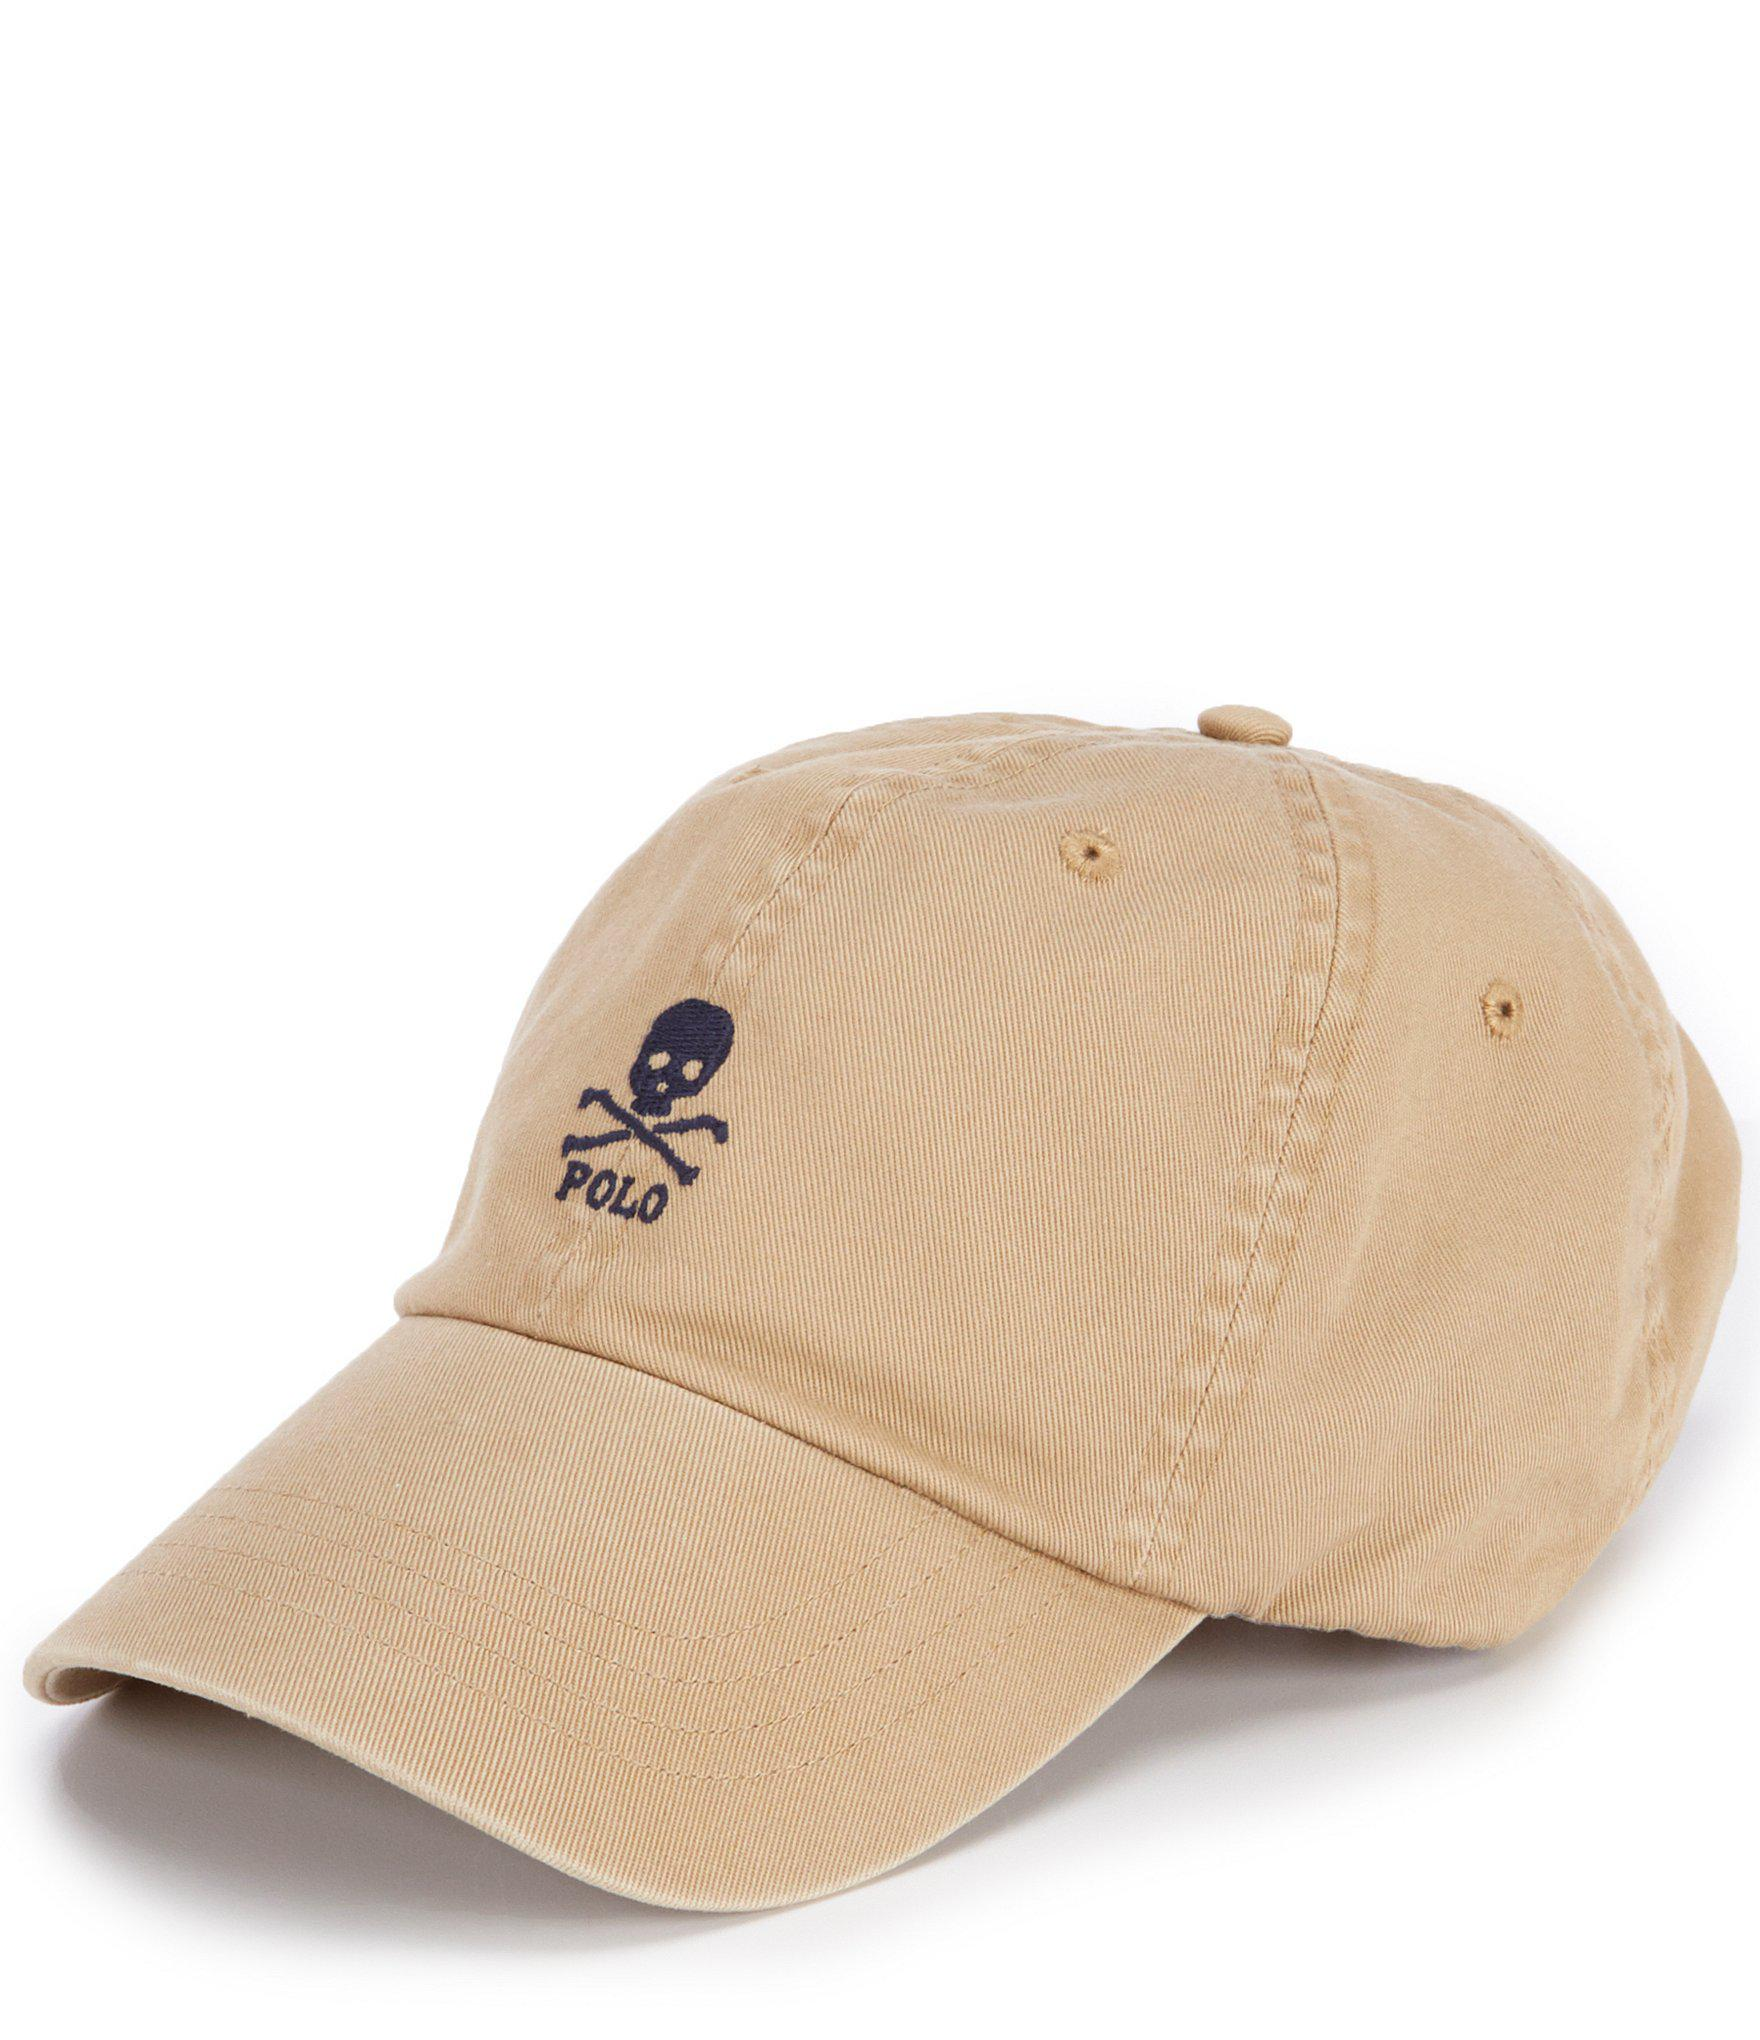 Lyst - Polo Ralph Lauren Skull-and-crossbones Chino Cap in Natural ... 373193e4a085